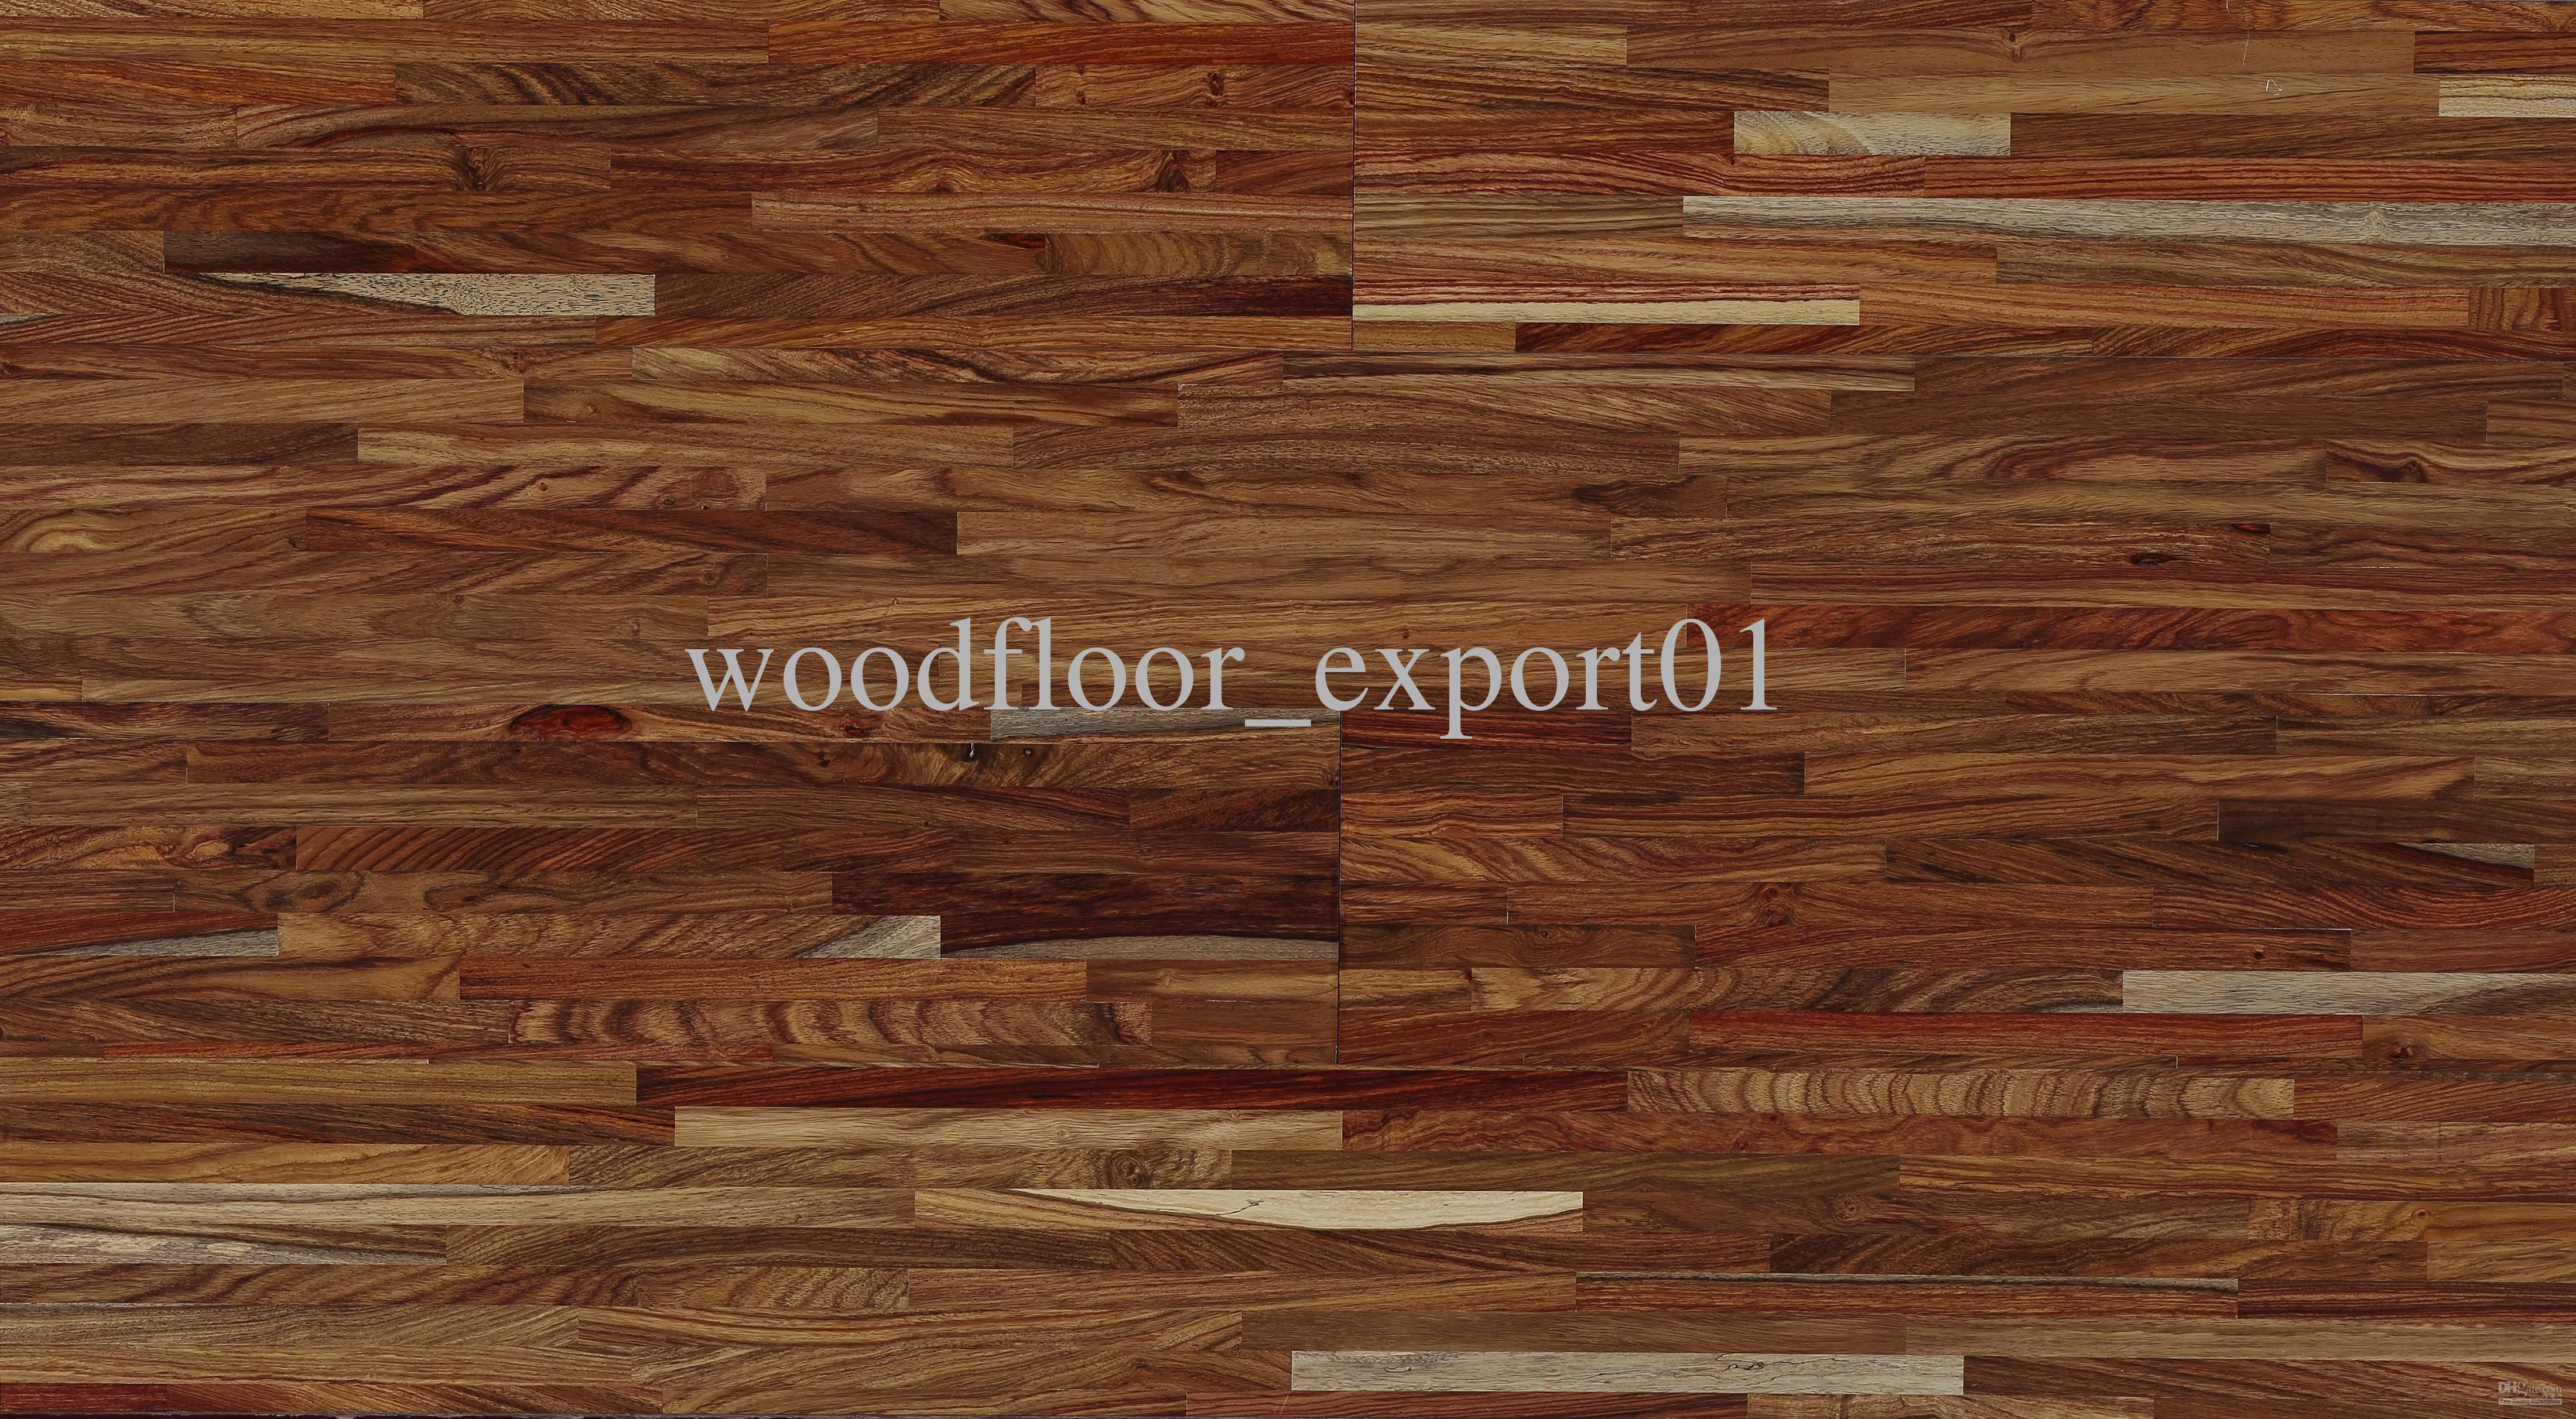 satin finish hardwood flooring reviews of rosewood hardwood flooring large living room floor european style regarding features specifications rosewood parquet wood flooring paintpu uv anti scratch painting gloss satin or semi gloss